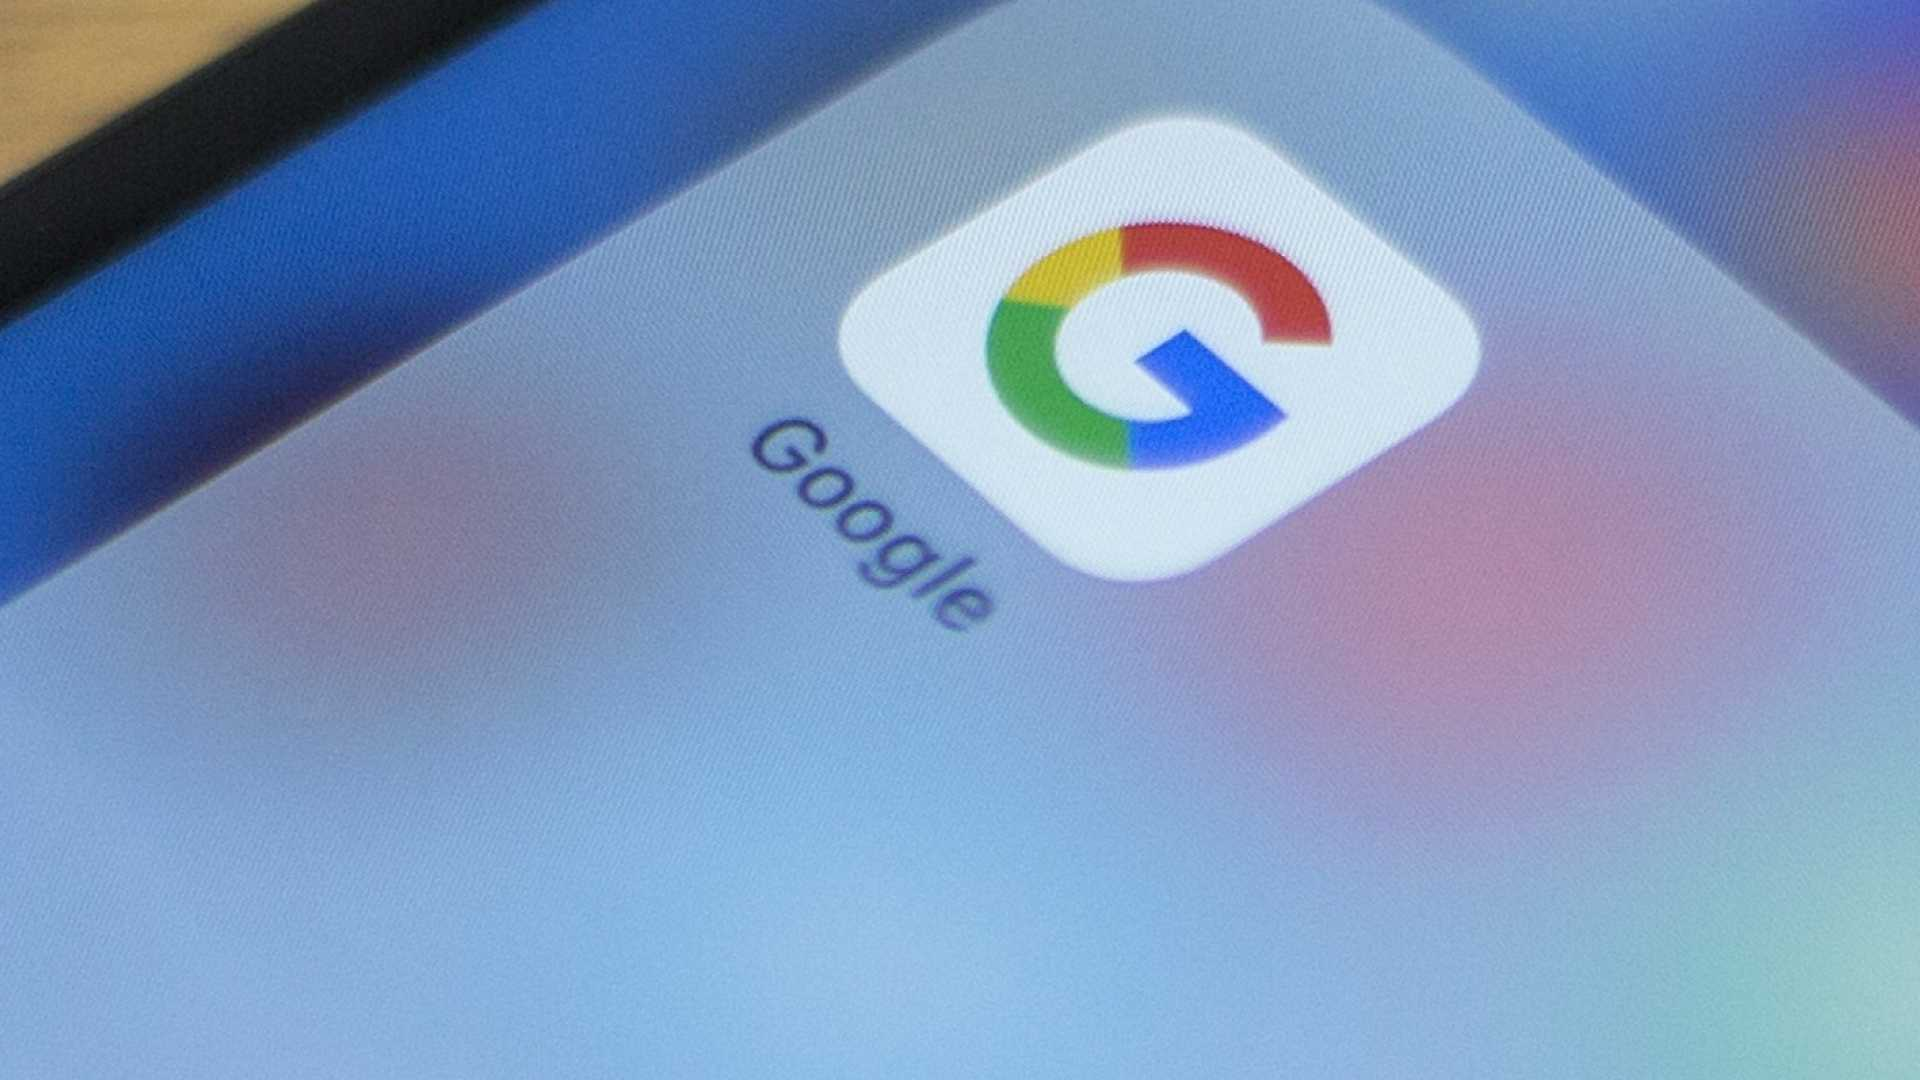 State Attorneys General Are Launching Antitrust Probes Into Facebook and Google